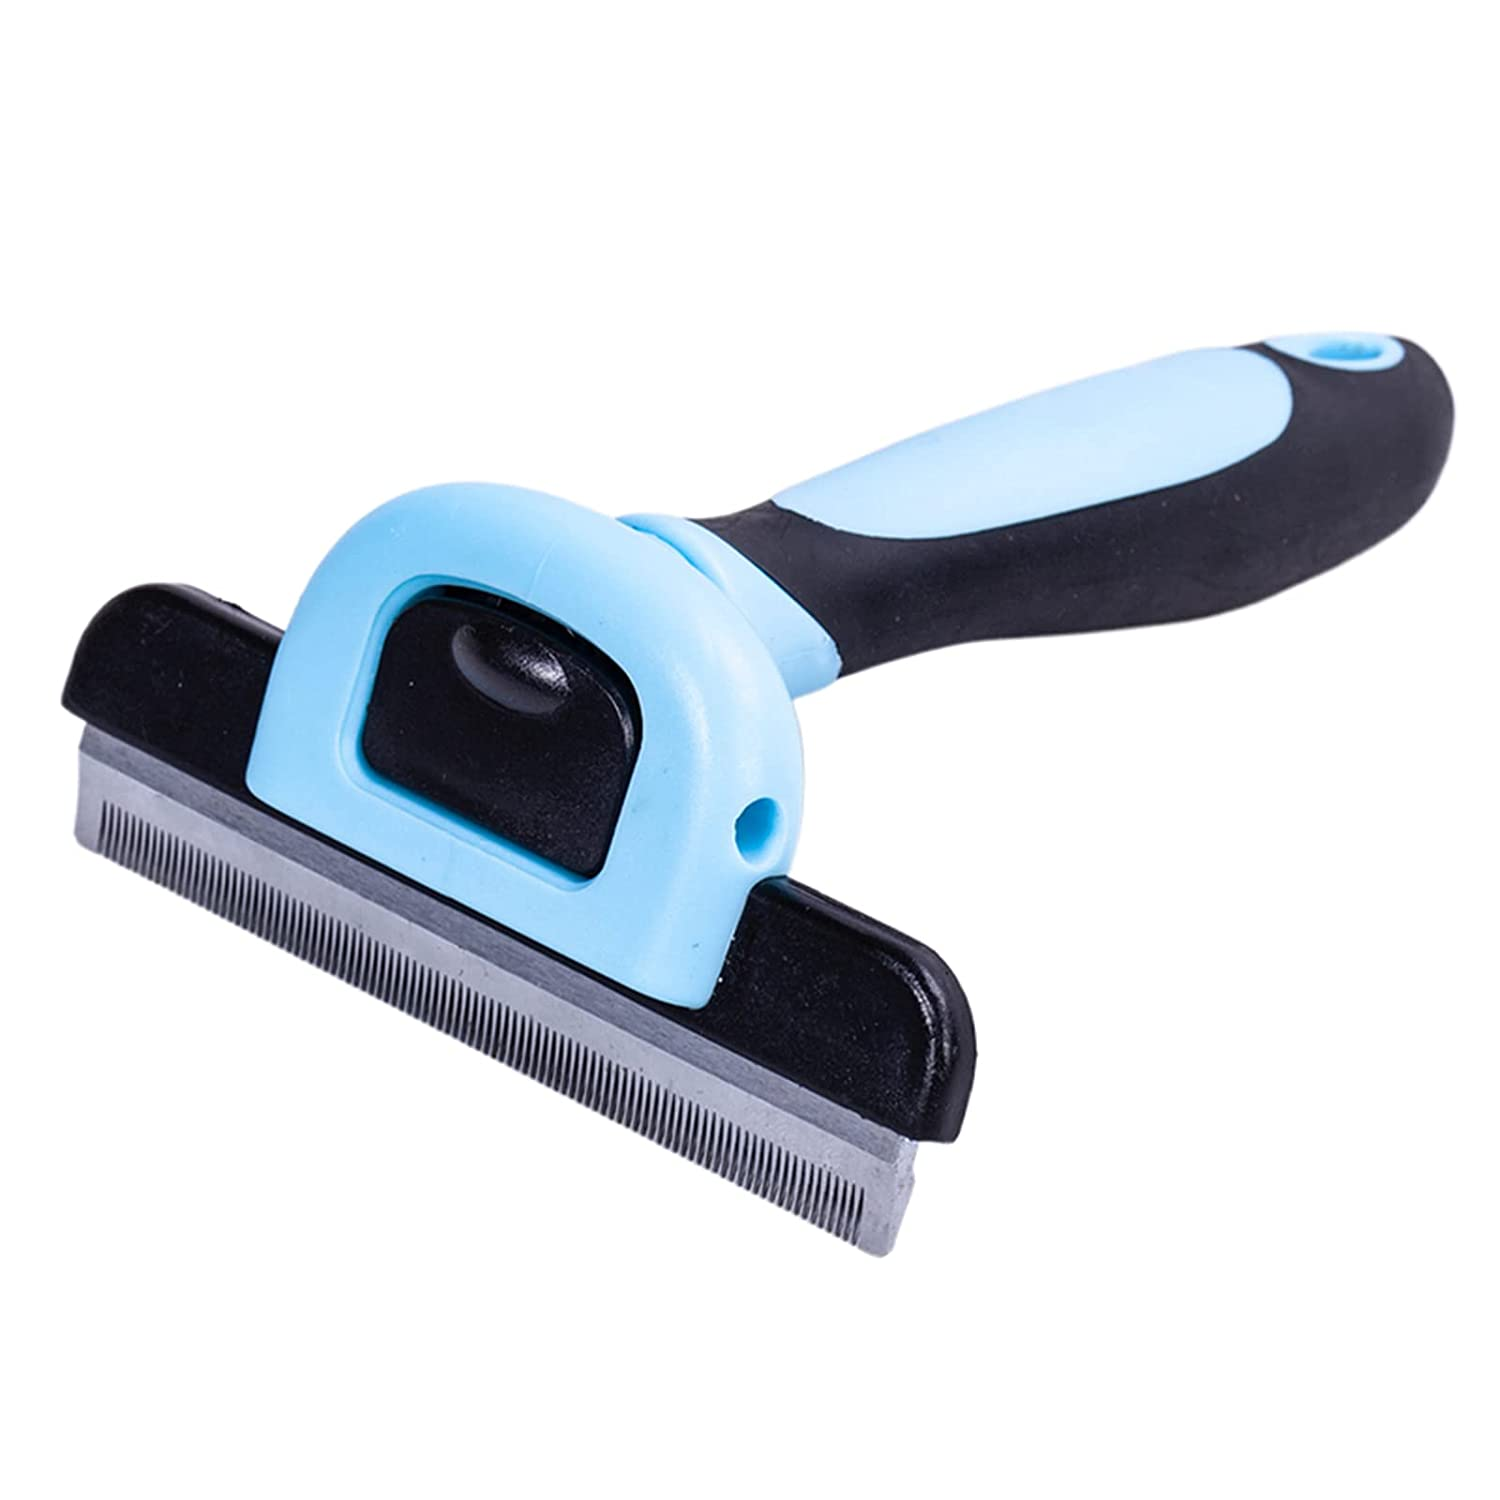 Road Luxury goods Comforts Pet Low price Grooming Small Size Brush